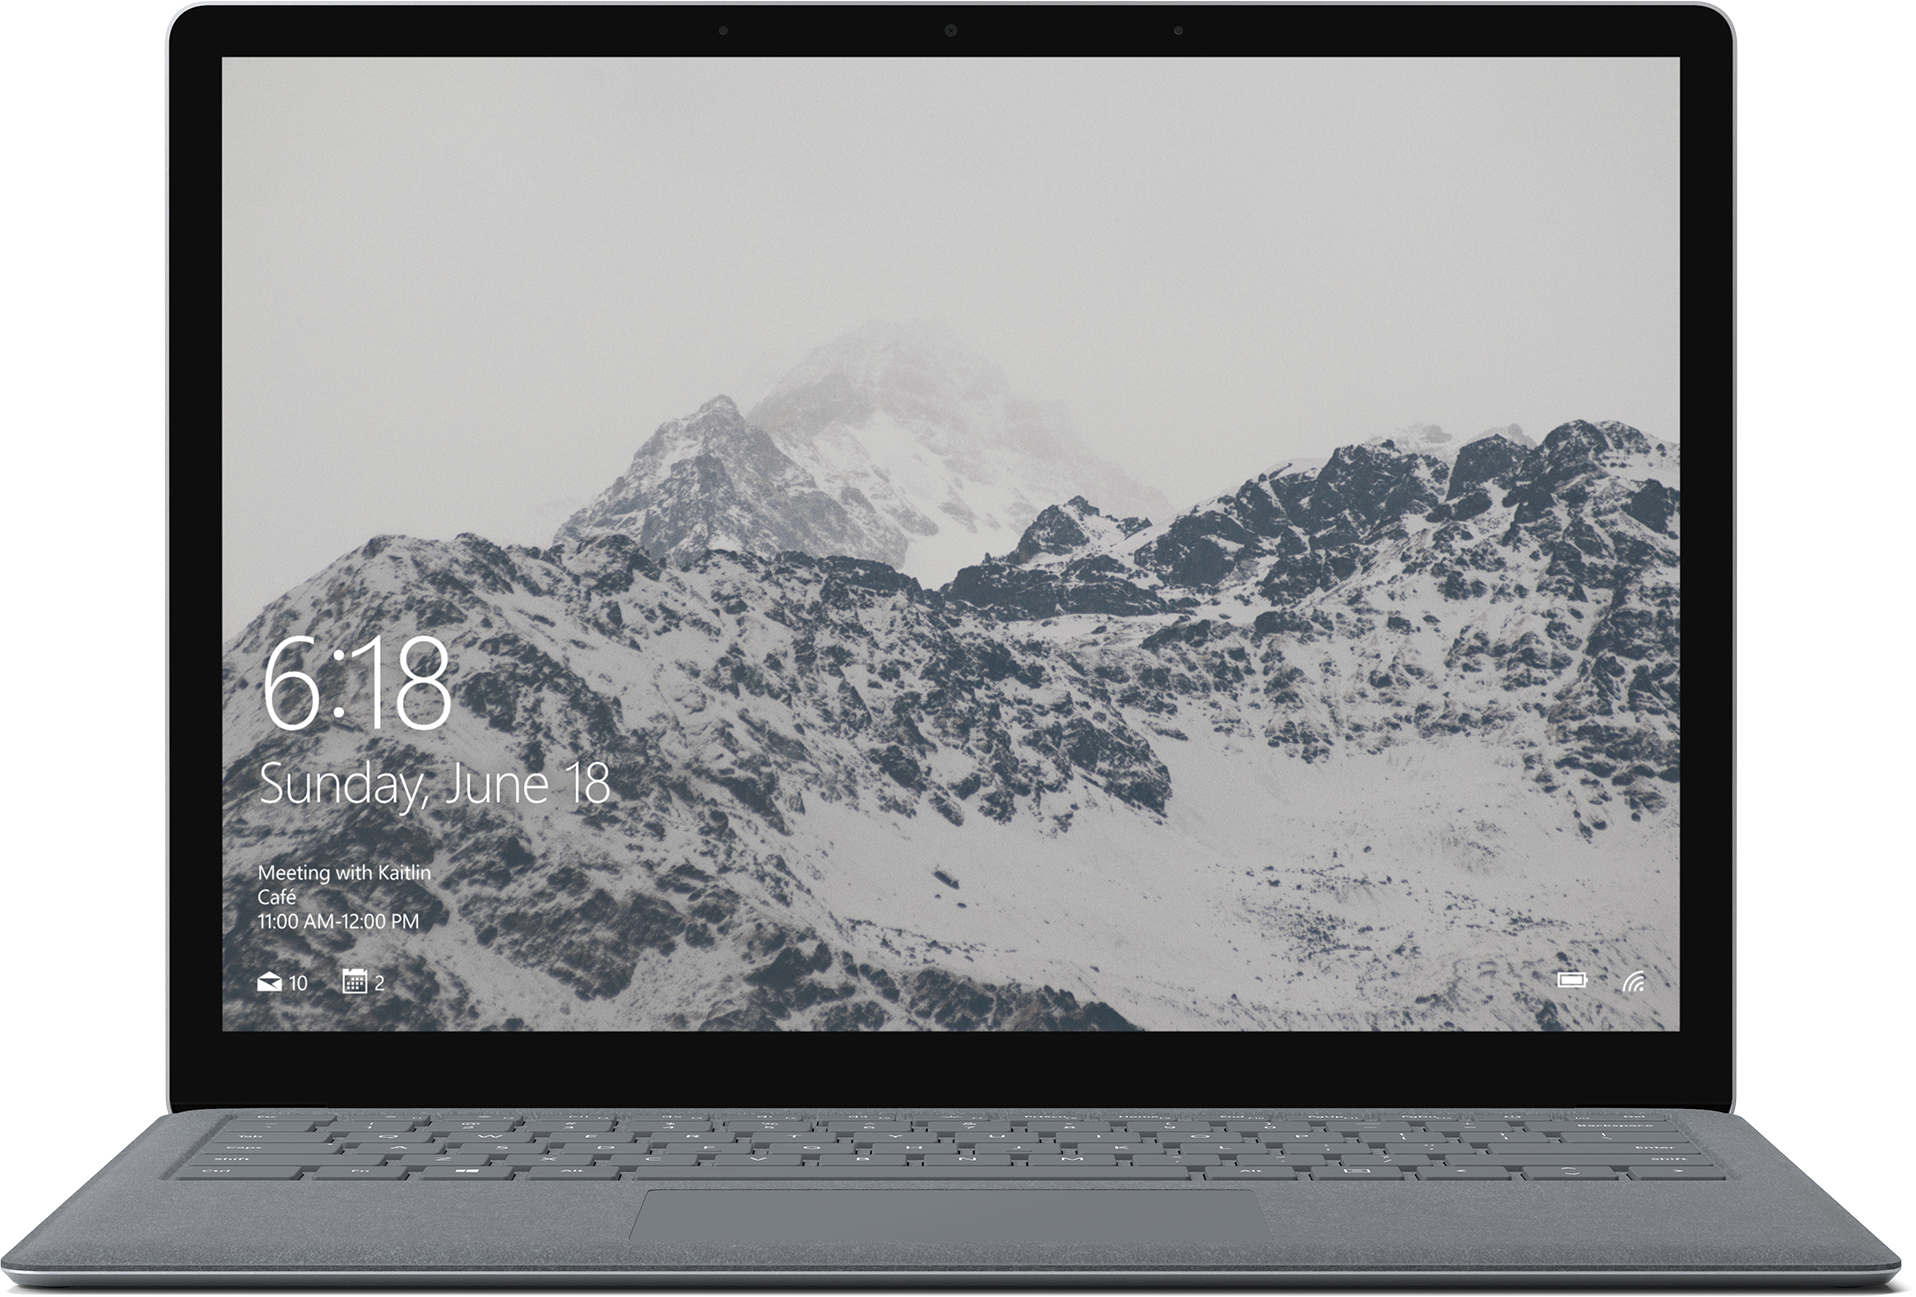 A surface laptop in working state with the front view